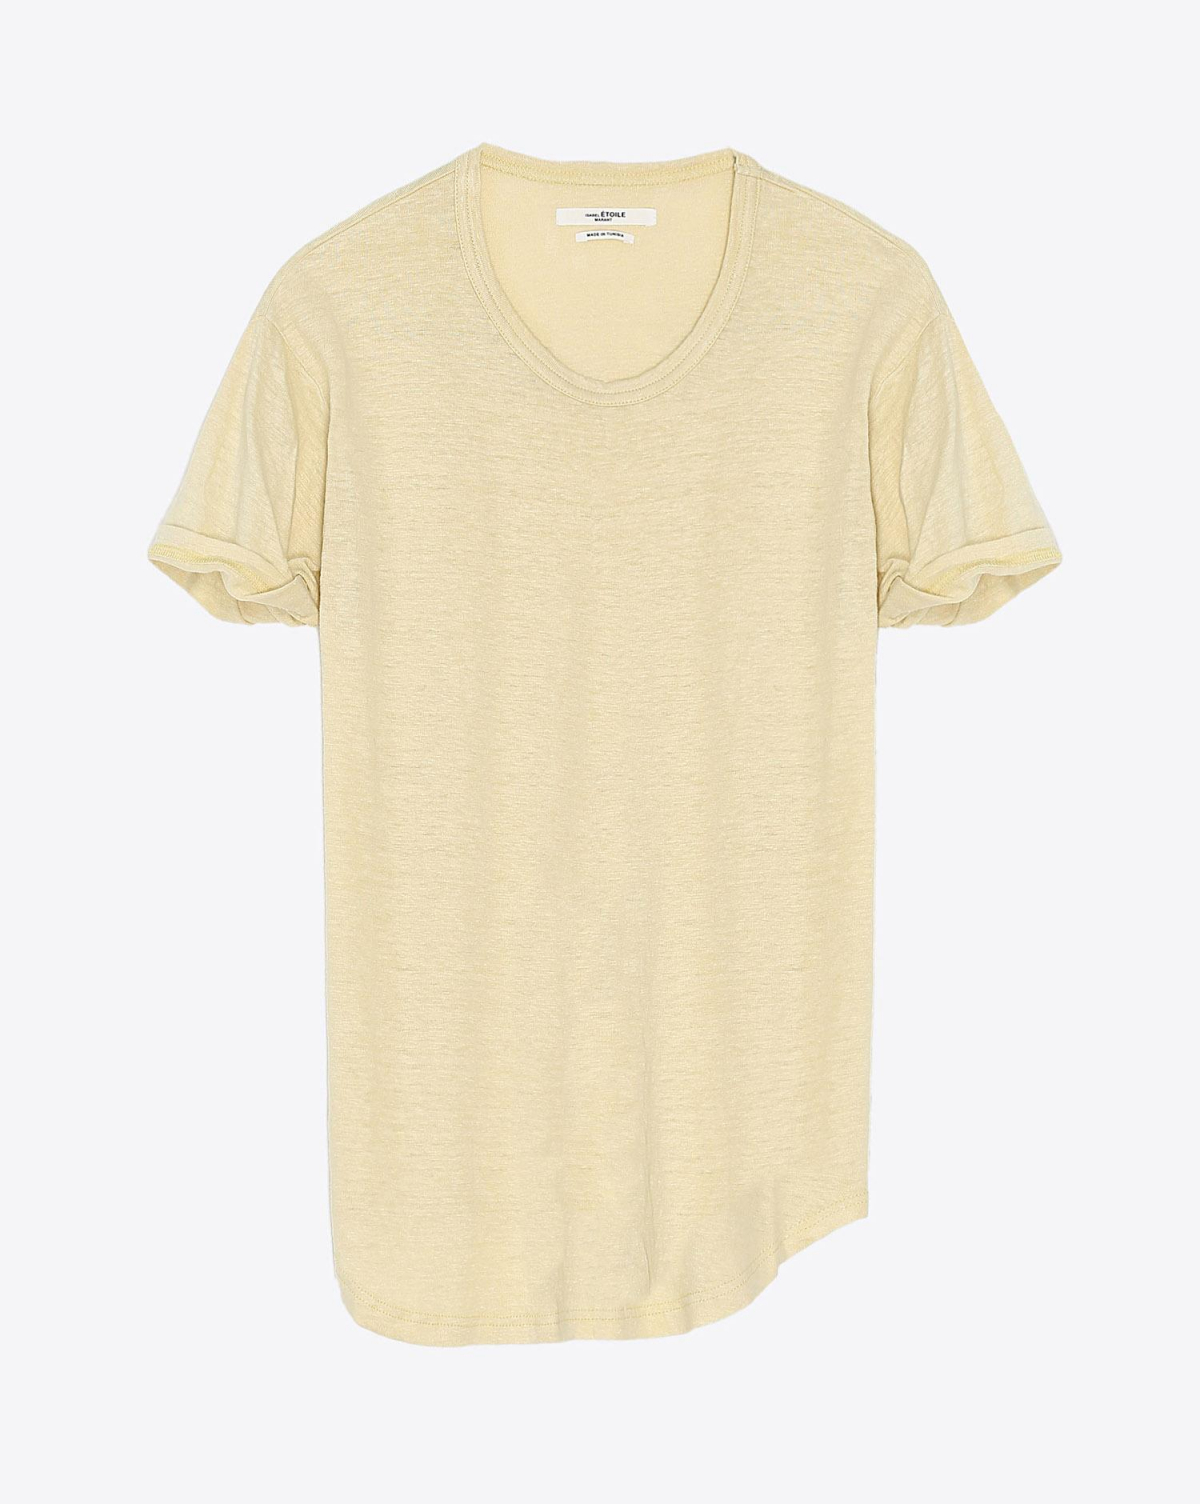 Isabel Marant Etoile Tee Shirt KOLDI - Uni Light Yellow